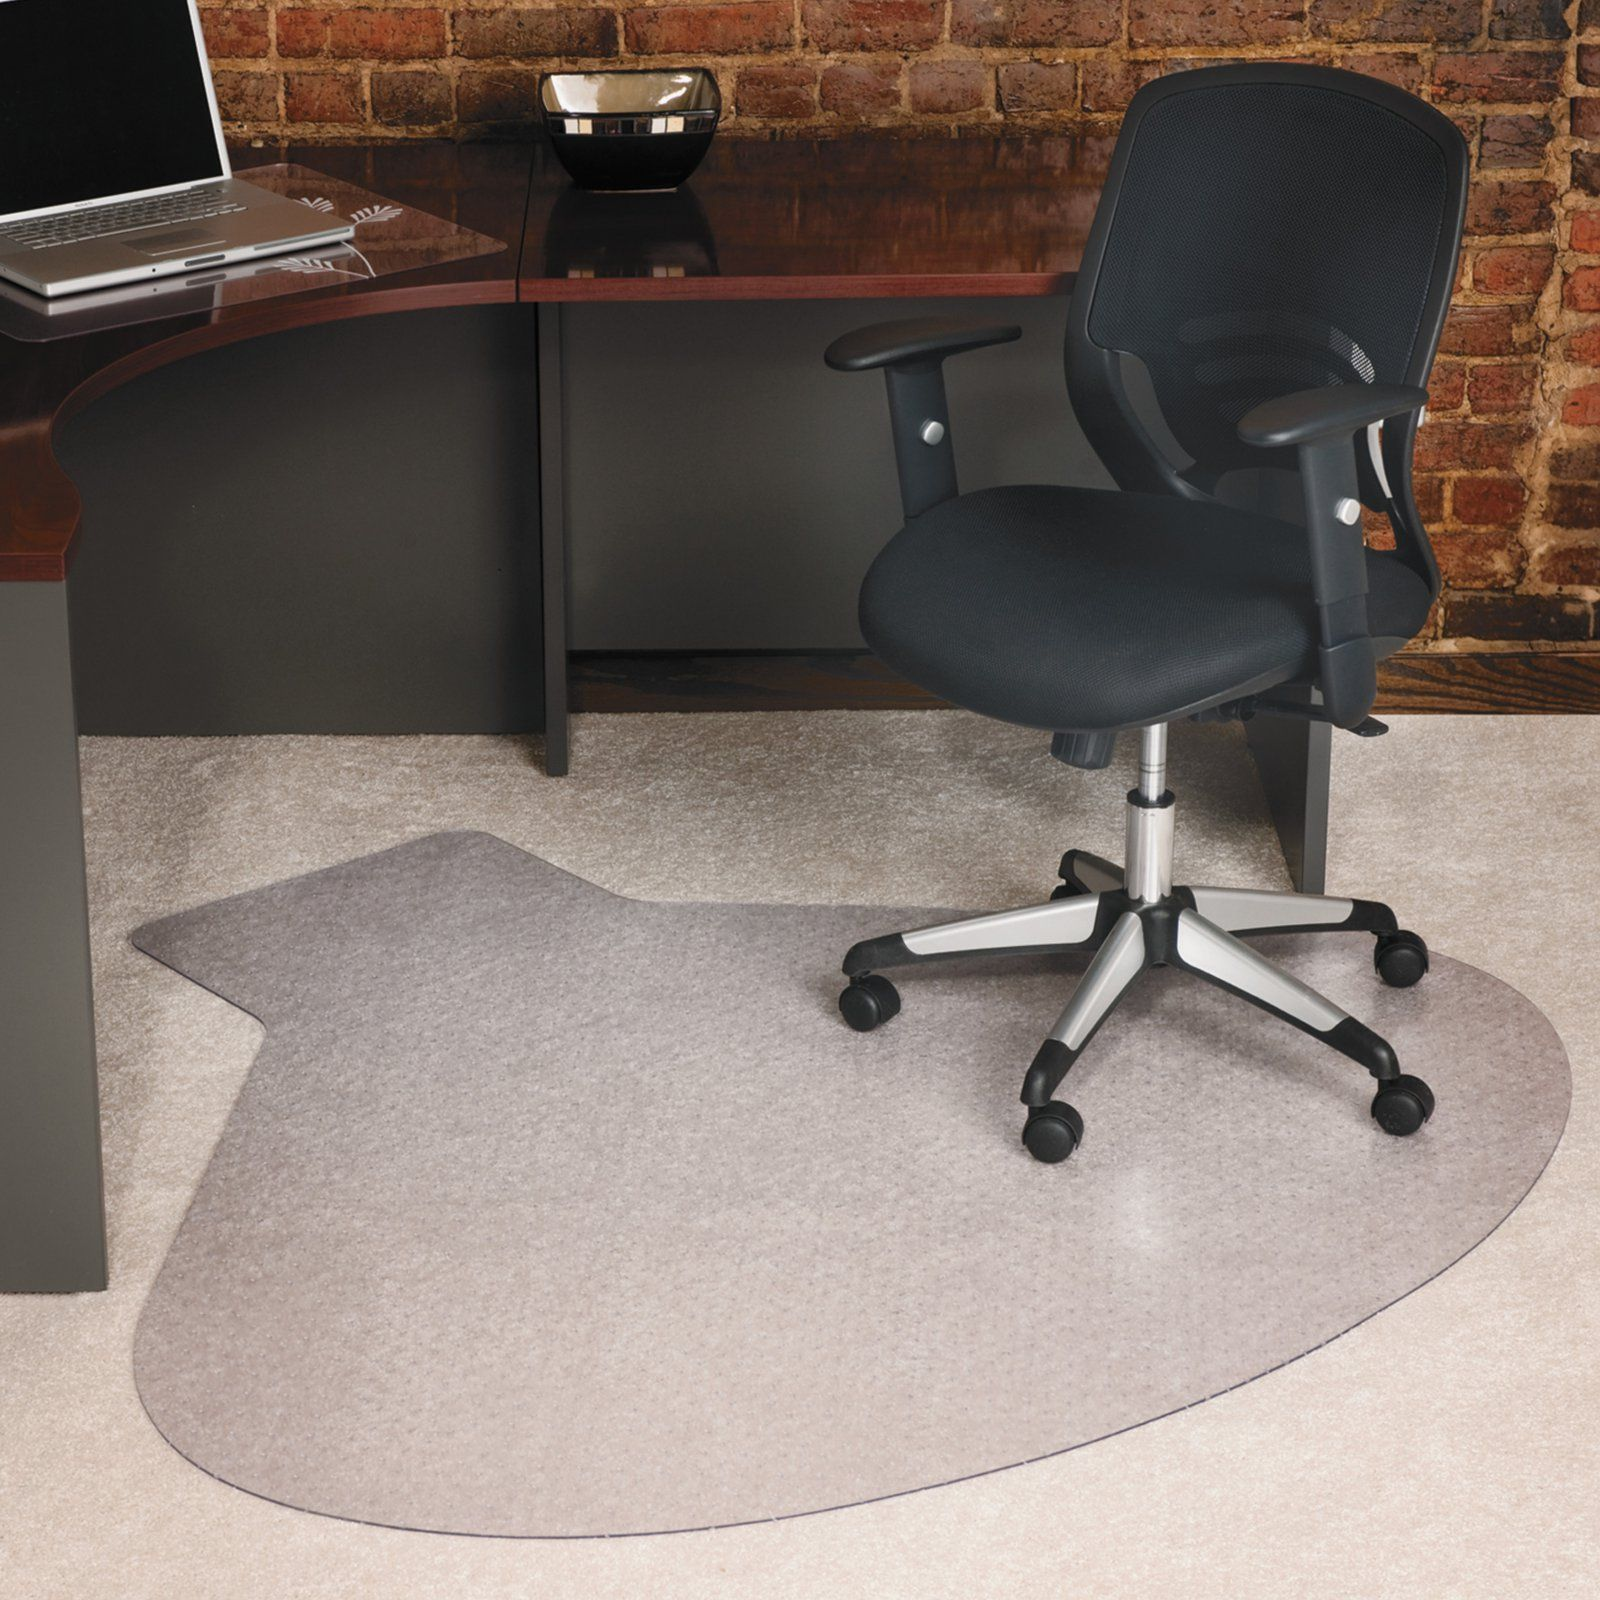 Phenomenal Es Robbins 66 X 60 Everlife Chair Mats For Medium Pile Machost Co Dining Chair Design Ideas Machostcouk